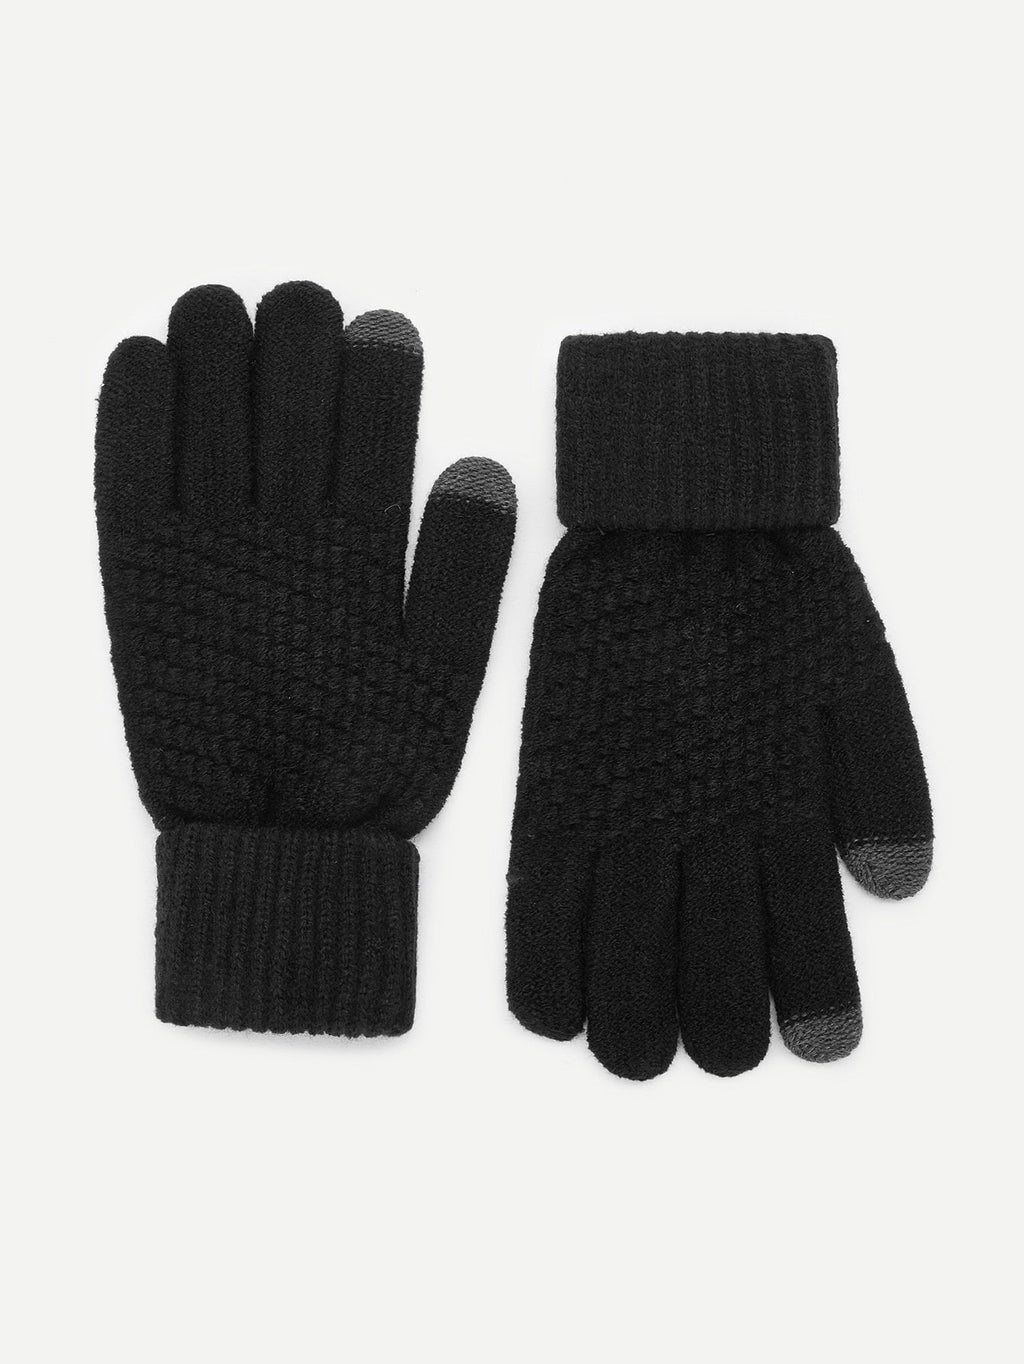 Winter Gloves For Men - Plain Gloves